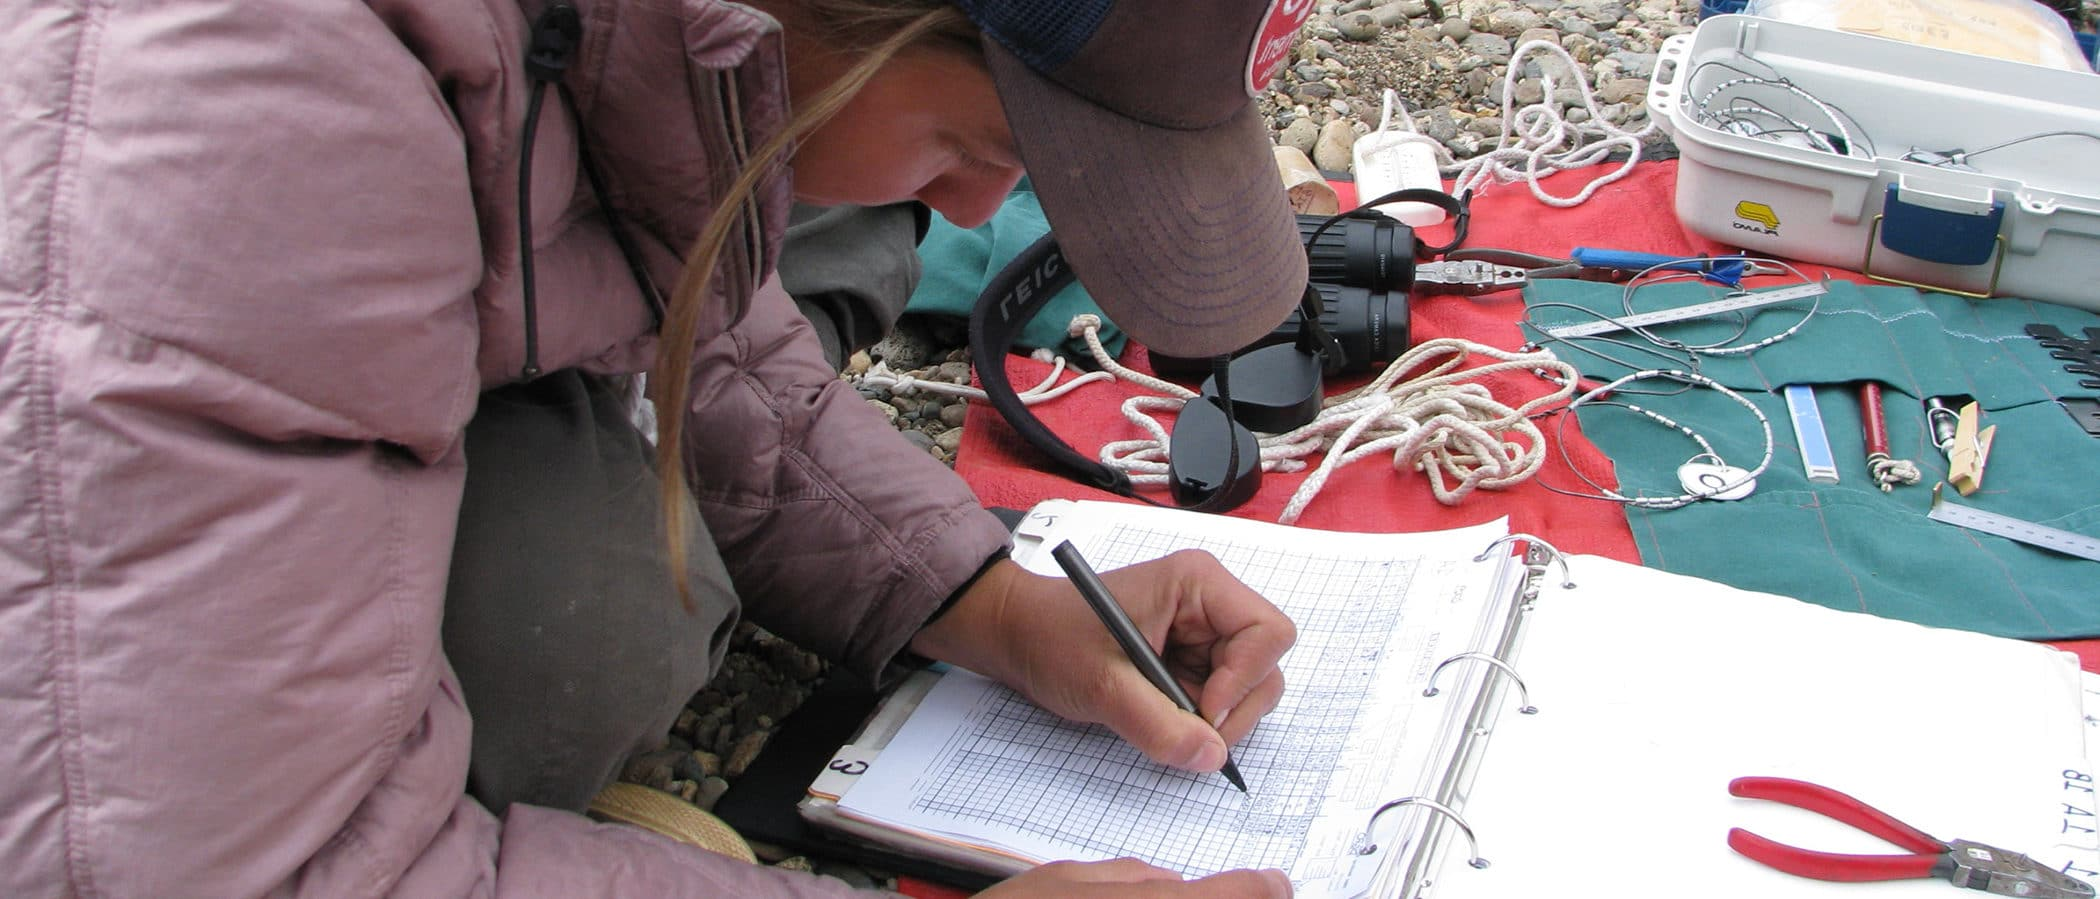 Researcher sits on the ground with binoculars and research equipment as she records data in a binder.